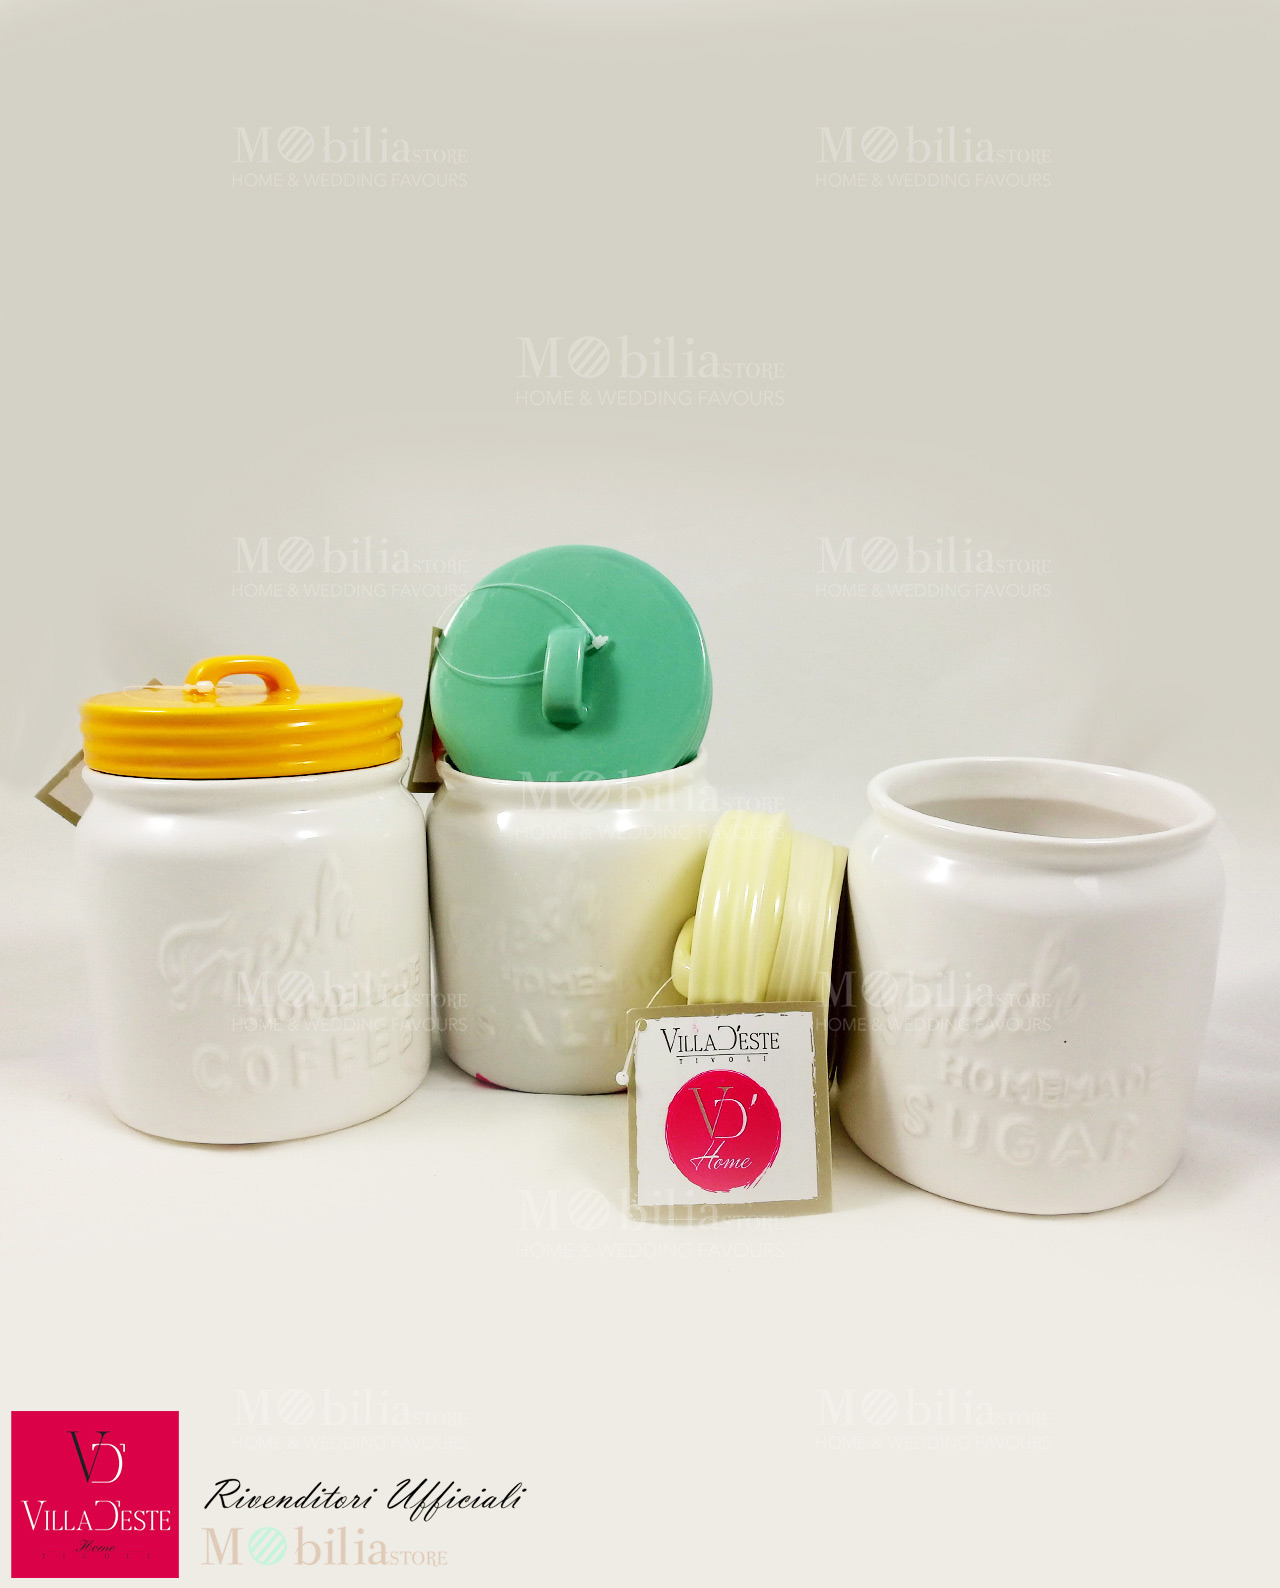 Olive set 3 barattoli colorati in ceramica mobilia store home favours - Barattoli cucina colorati ...